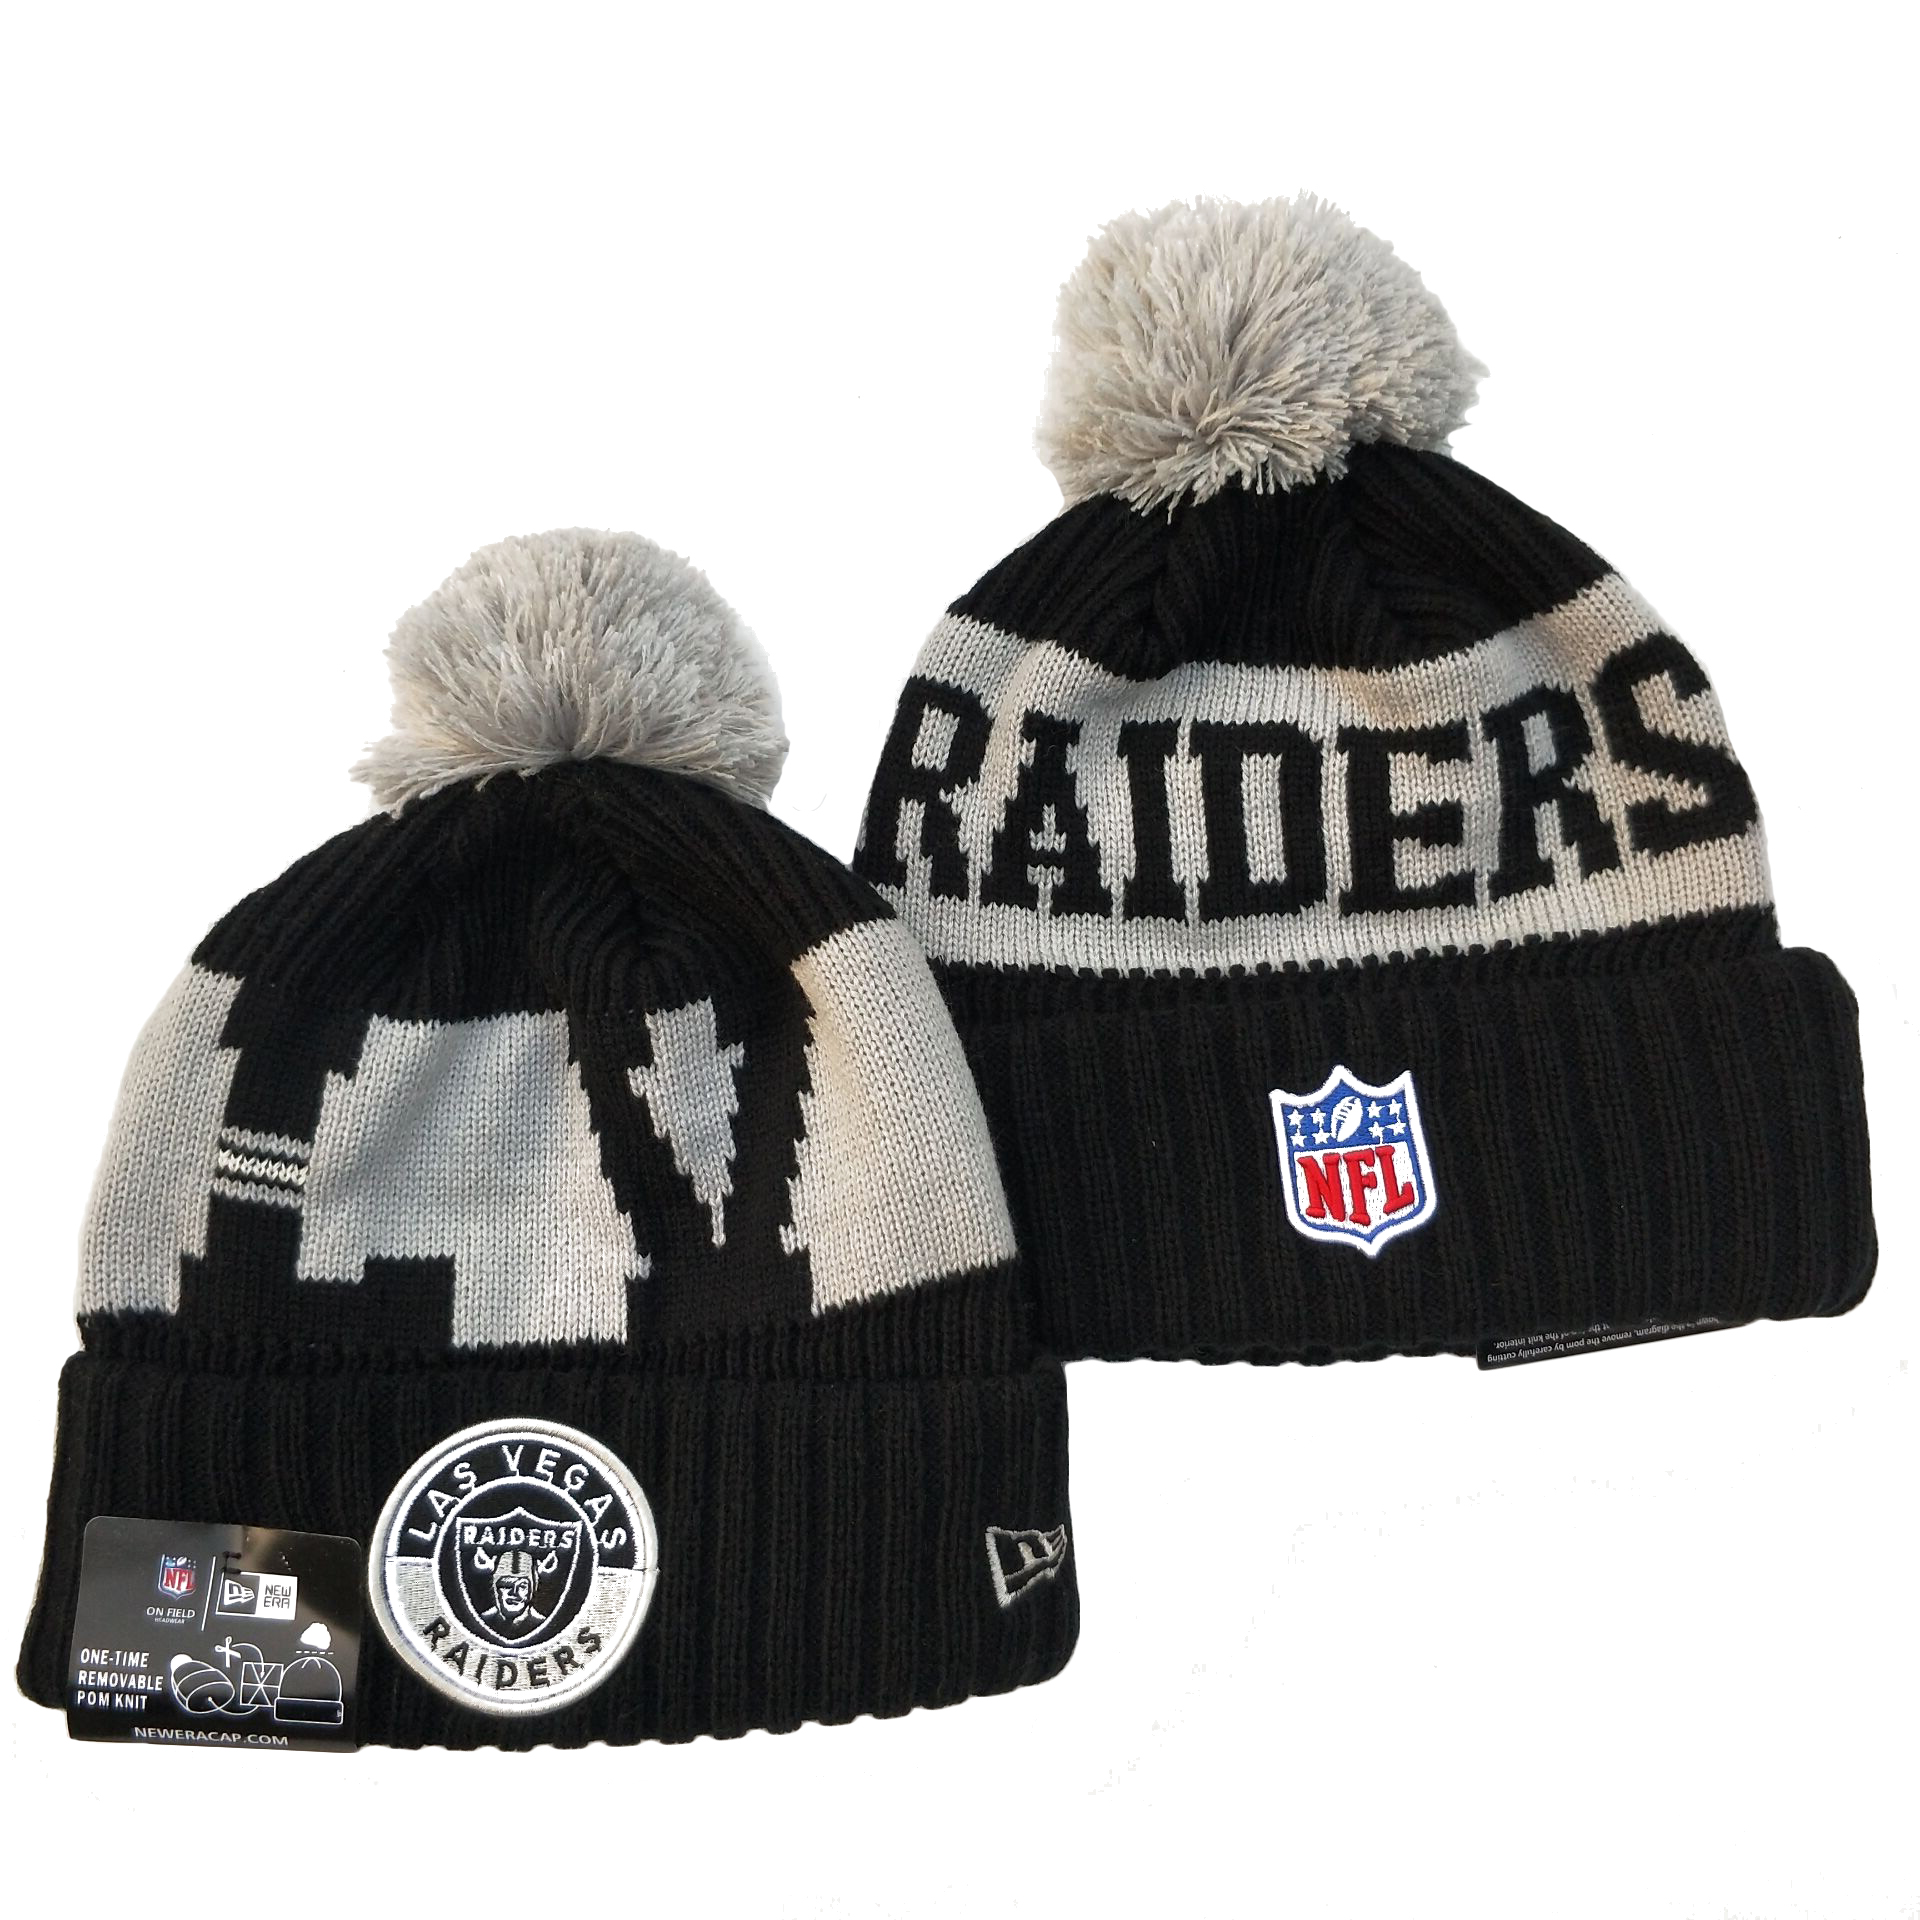 Las Vegas Raiders Knit Hats 076